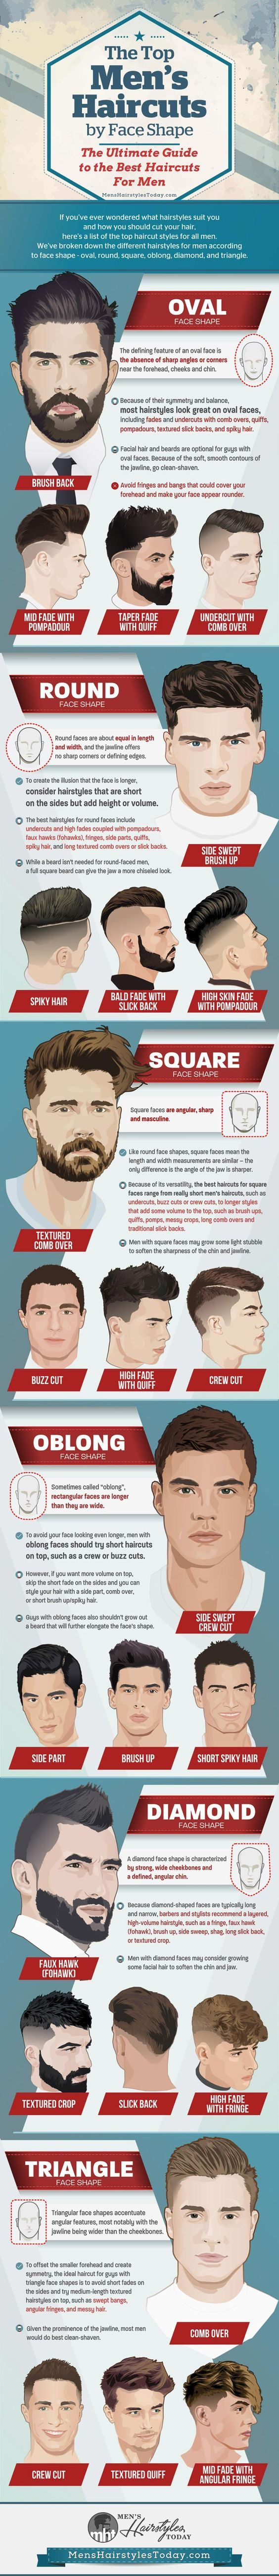 Unique Barber Hairstyle Guide Hairstyle Ideas